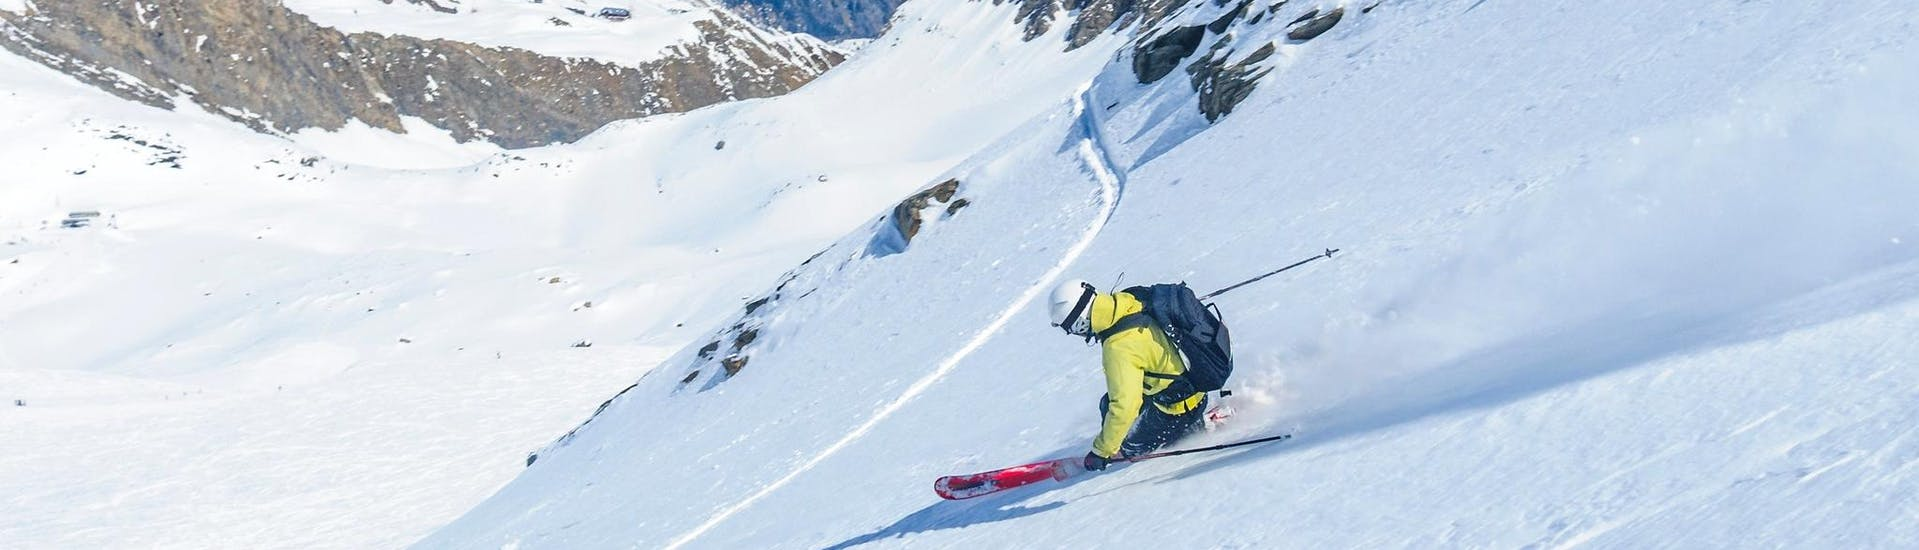 A freeride skier is skiing through the powder snow during one of the Freeriding -- Surf your perfect line with ROCKnSNOW organised by ROCKnSNOW Alpine Guiding.